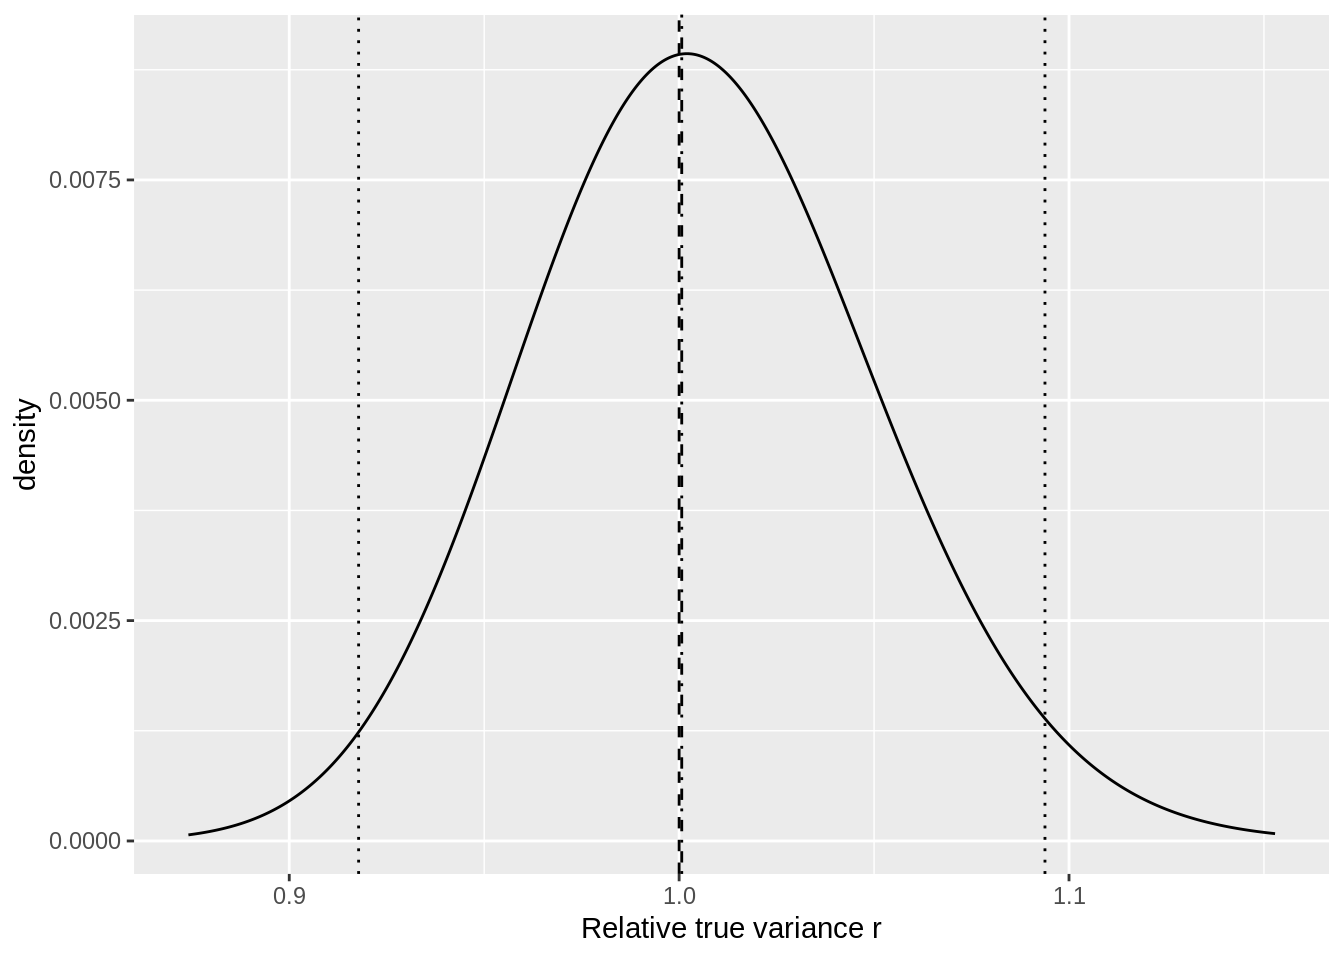 Distribution of the relative true variance ($\frac{\sigma^2}{s^2}$) when $n_s = 1000$. Dashed line: $\frac{\sigma^2}{s^2} = 1$ Dotted lines: 2.5% and 97.5% quantiles of $\frac{\sigma^2}{s^2}$. Dash-dotted line: median of $\frac{\sigma^2}{s^2}$.